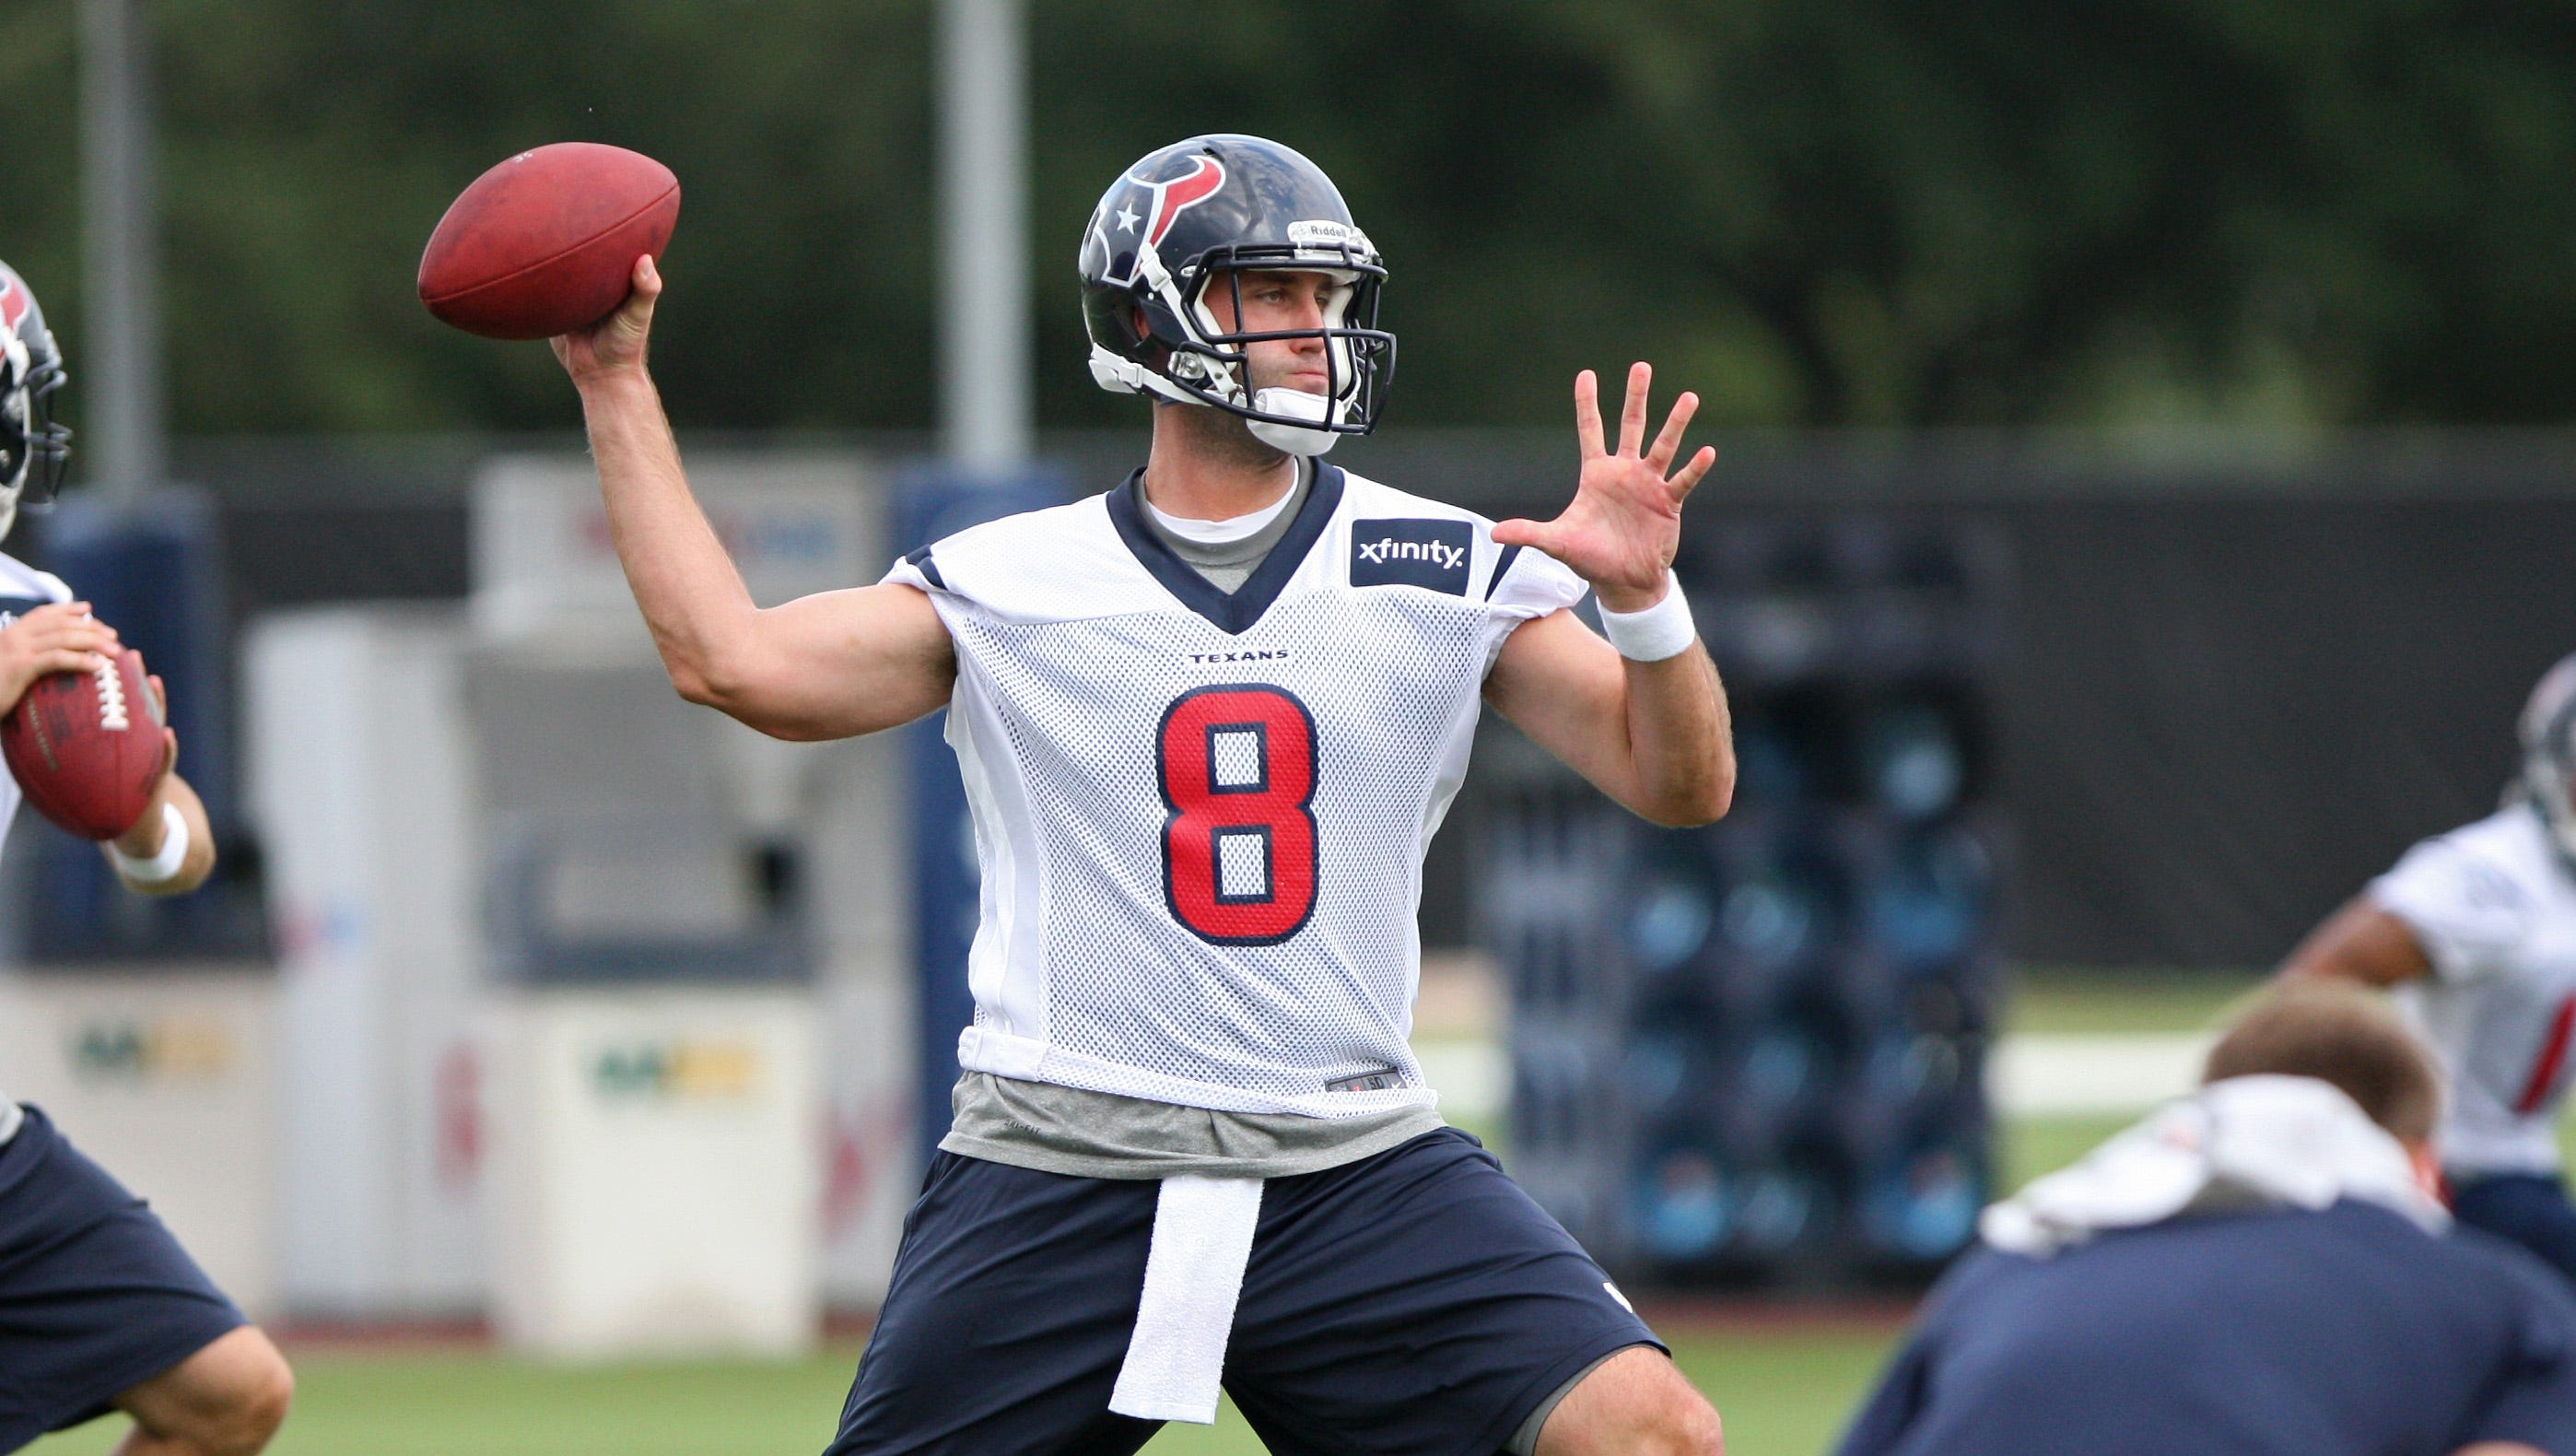 19. Matt Schaub, Houston Texans